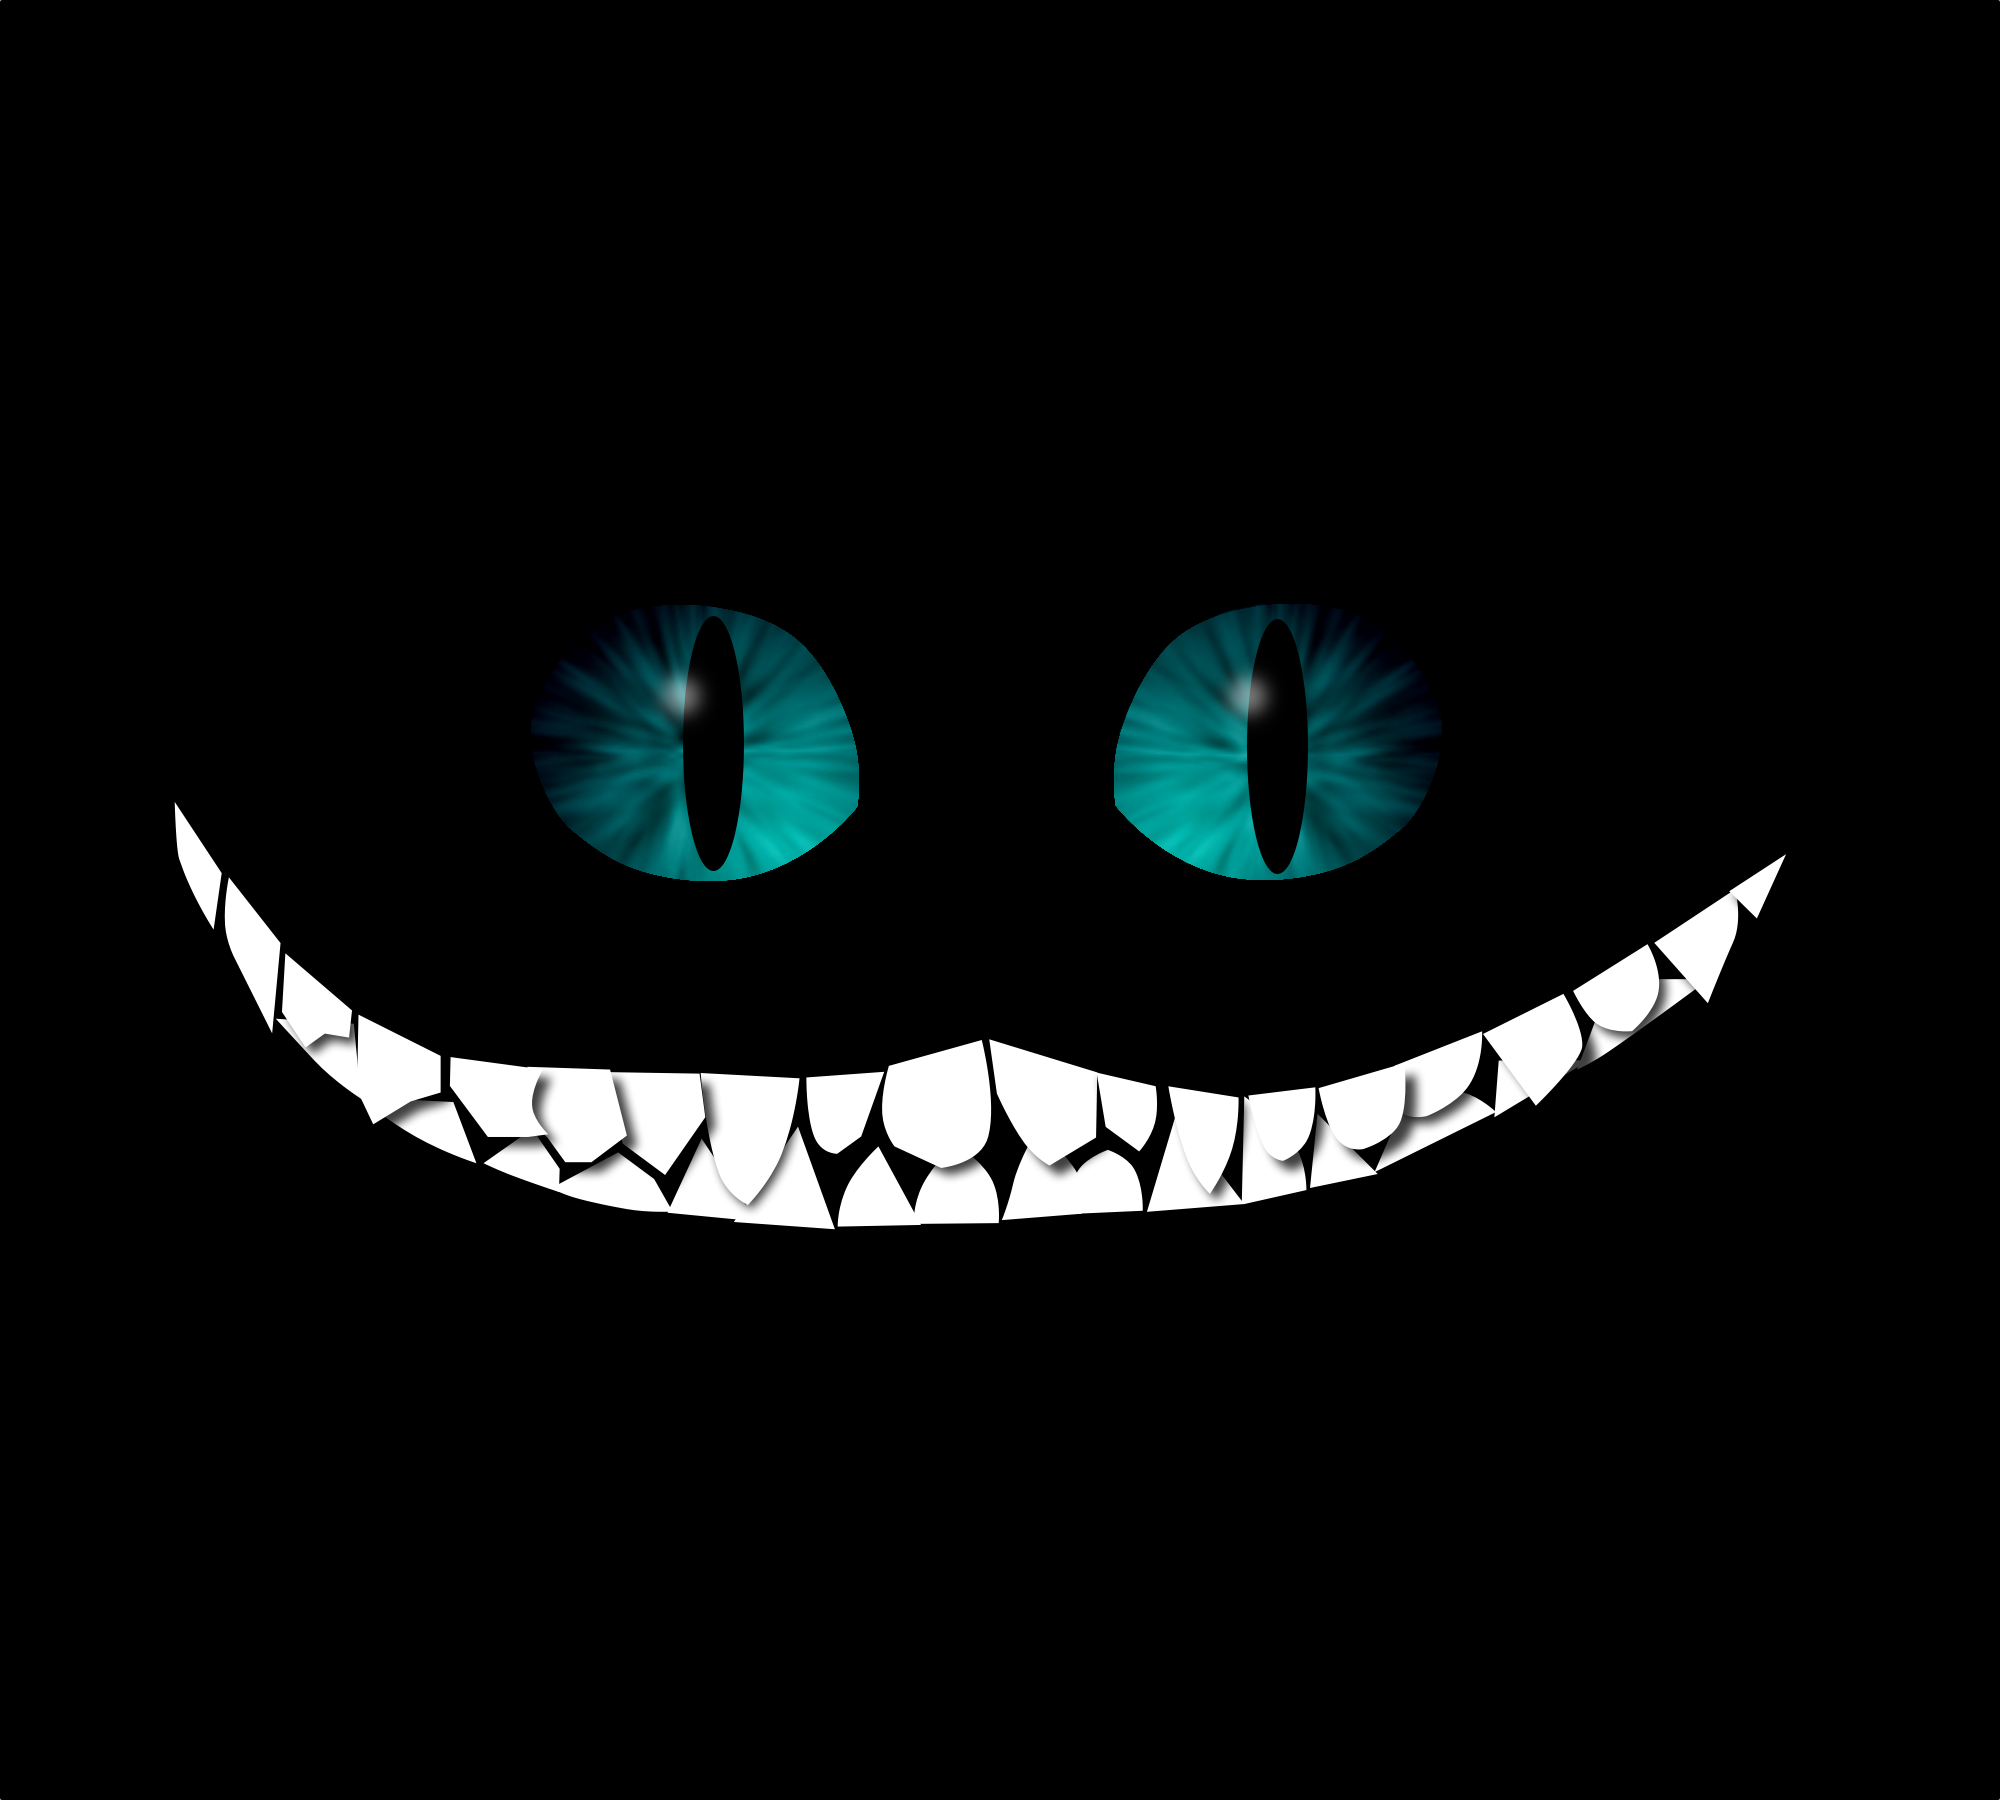 Search For Cat 2 1549 Printable Treats Com Cheshire Cat Smile Cheshire Cat Cat Printable